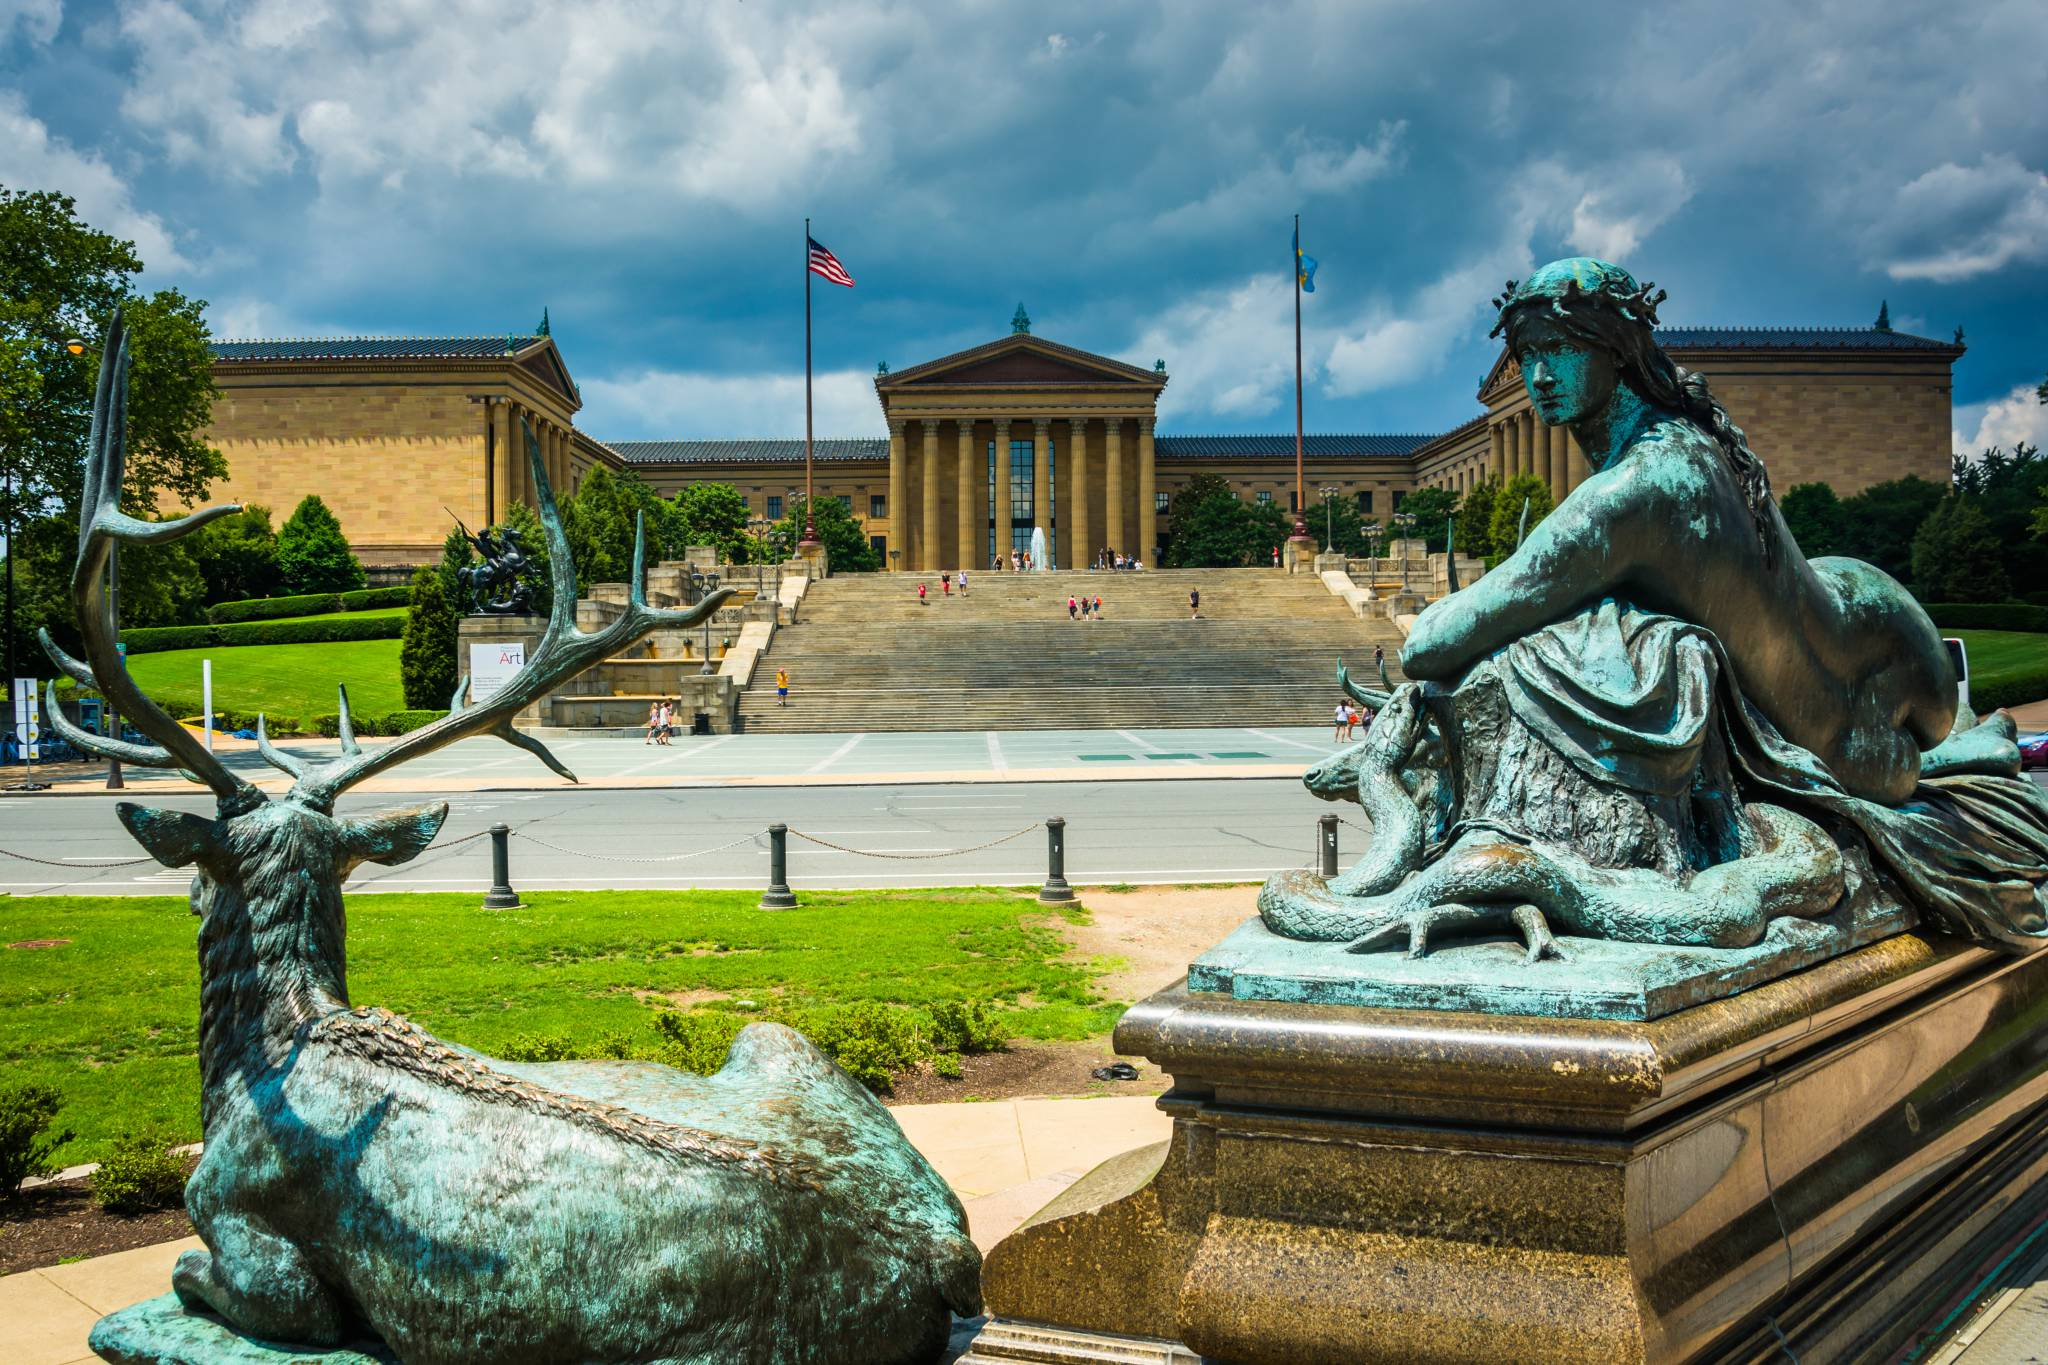 Amazing Philadelphia Museum of Art!